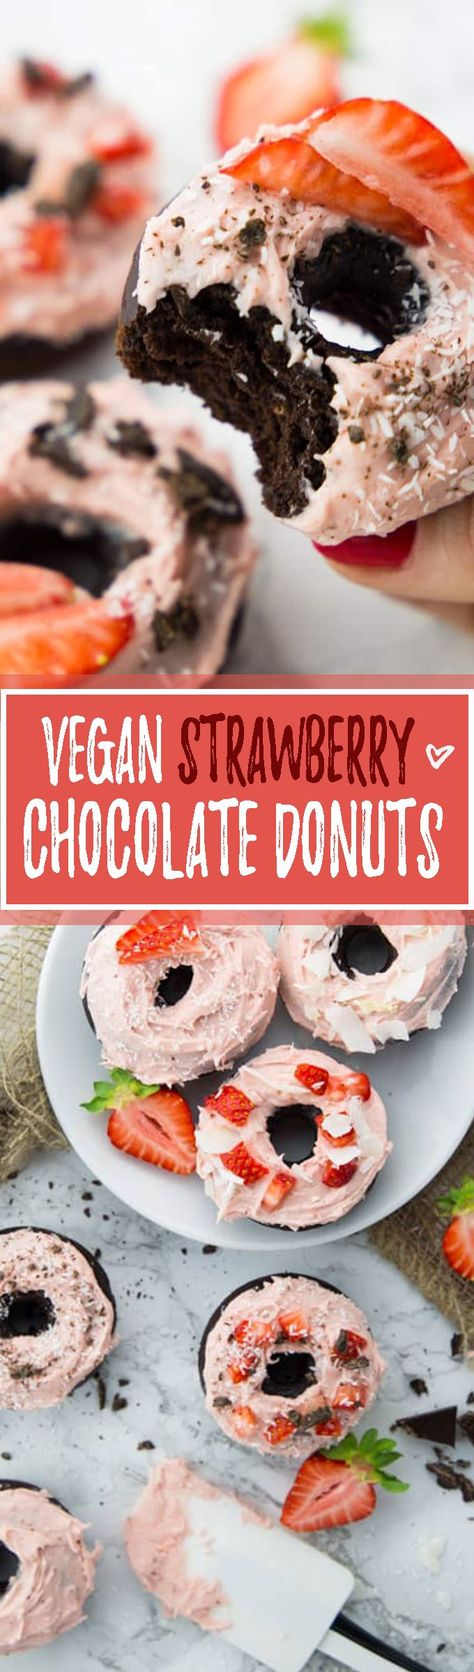 These vegan chocolate donuts are one of my favorites! They're super chocolatey with a creamy strawberry frosting topped with coconut flakes. SO good!